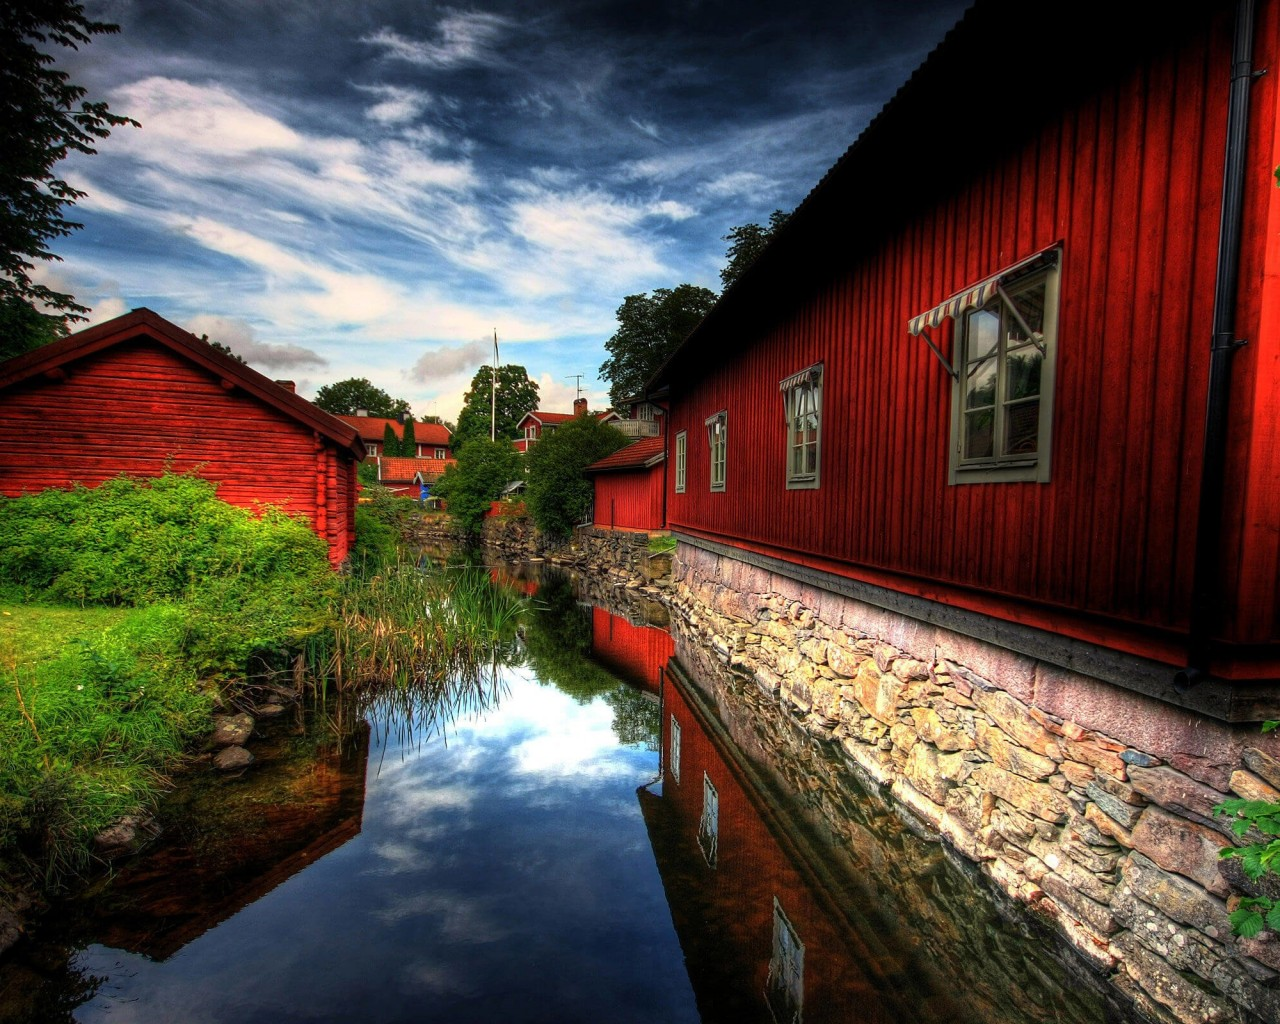 Red Village, Norberg, Sweden Wallpaper for Desktop 1280x1024